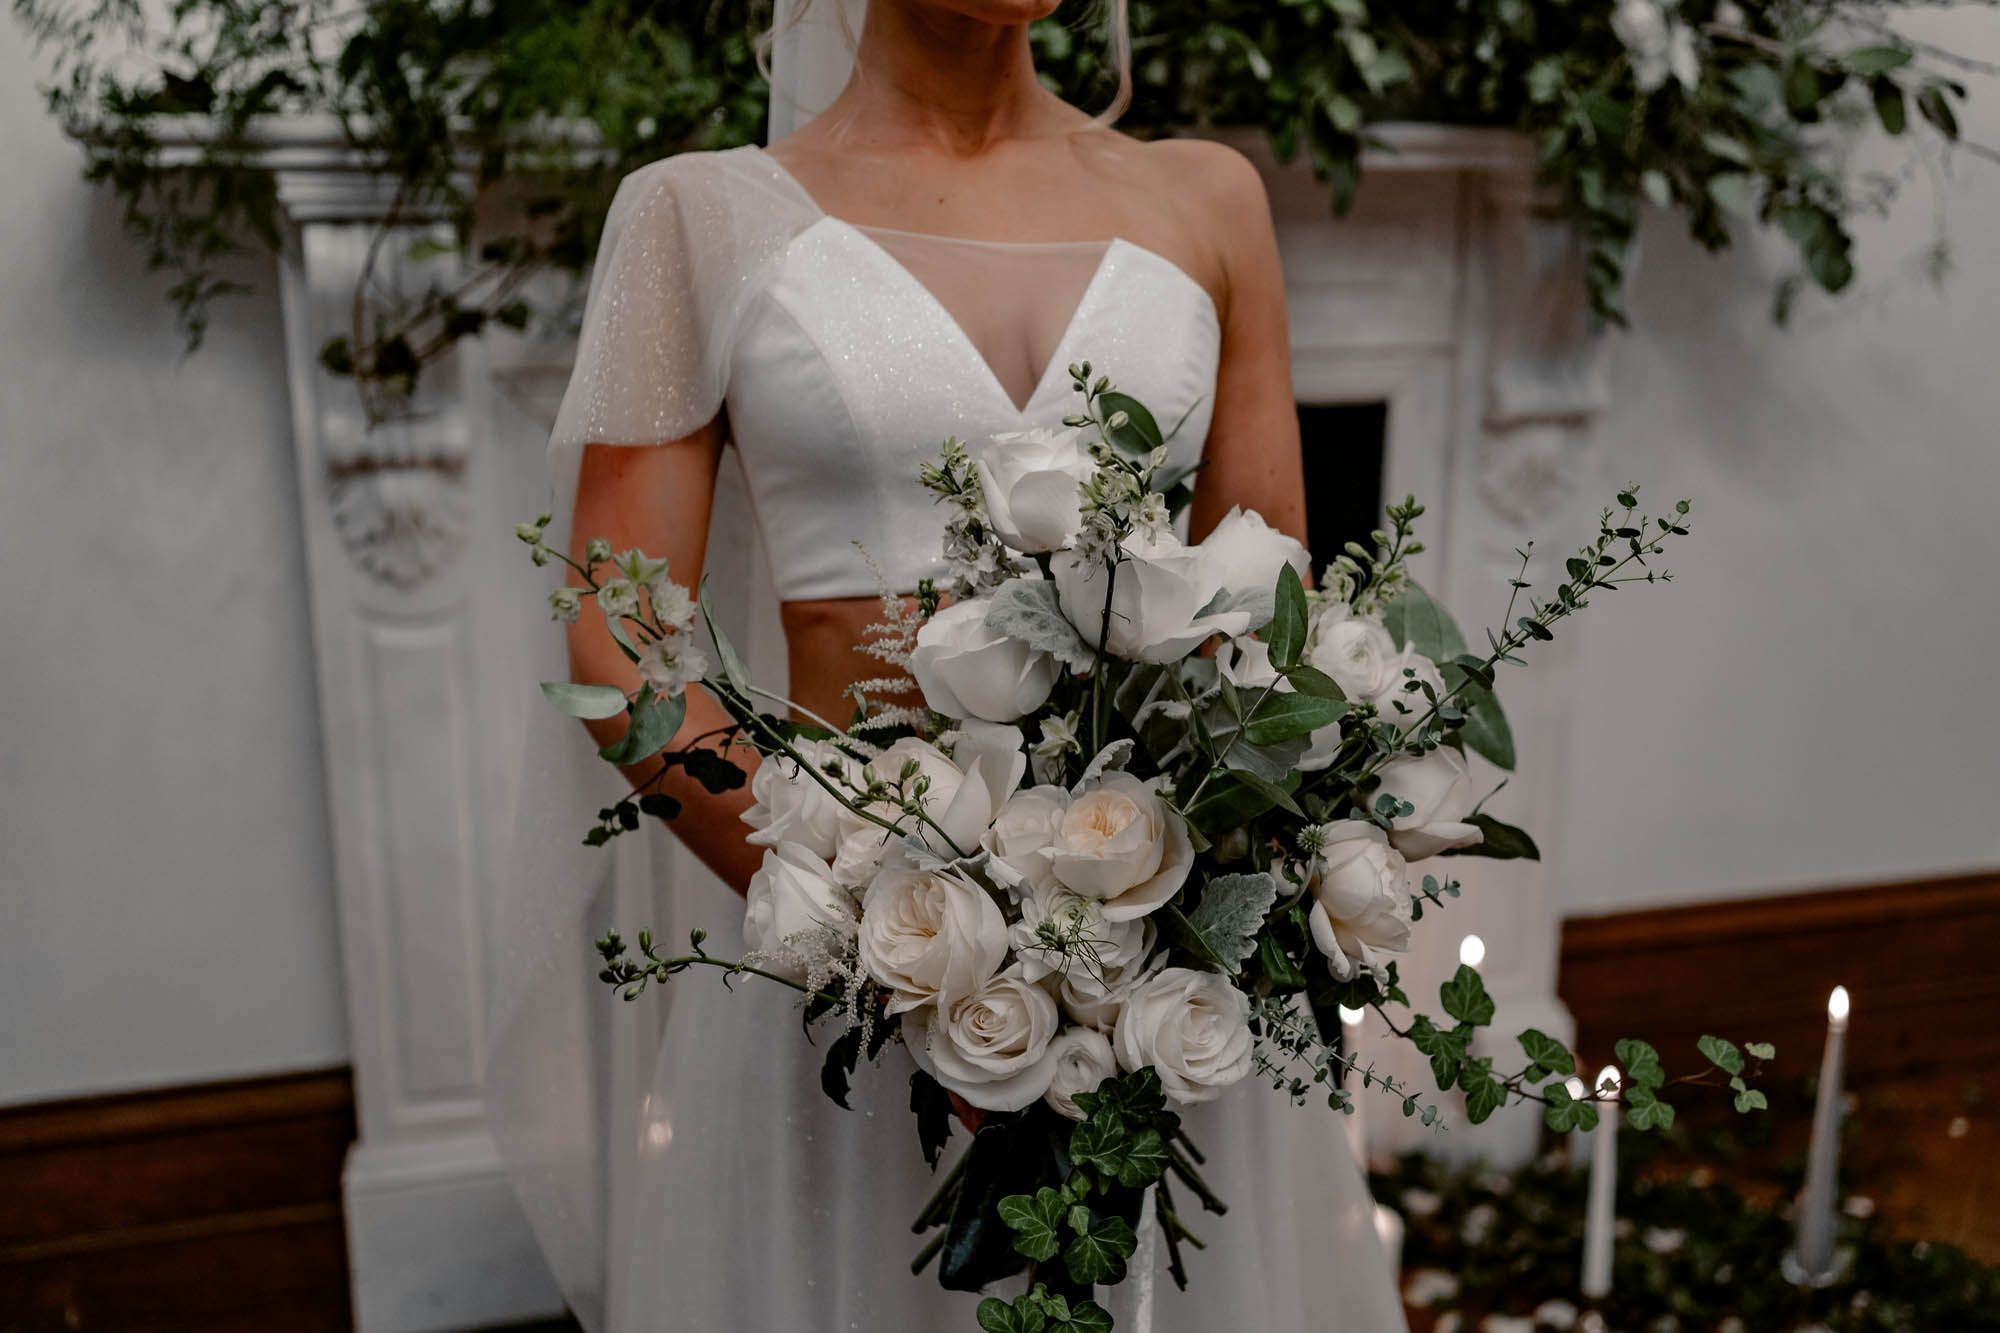 Winter Weddings at Thicket Priory - Thicket Priory Wedding Venue And Events